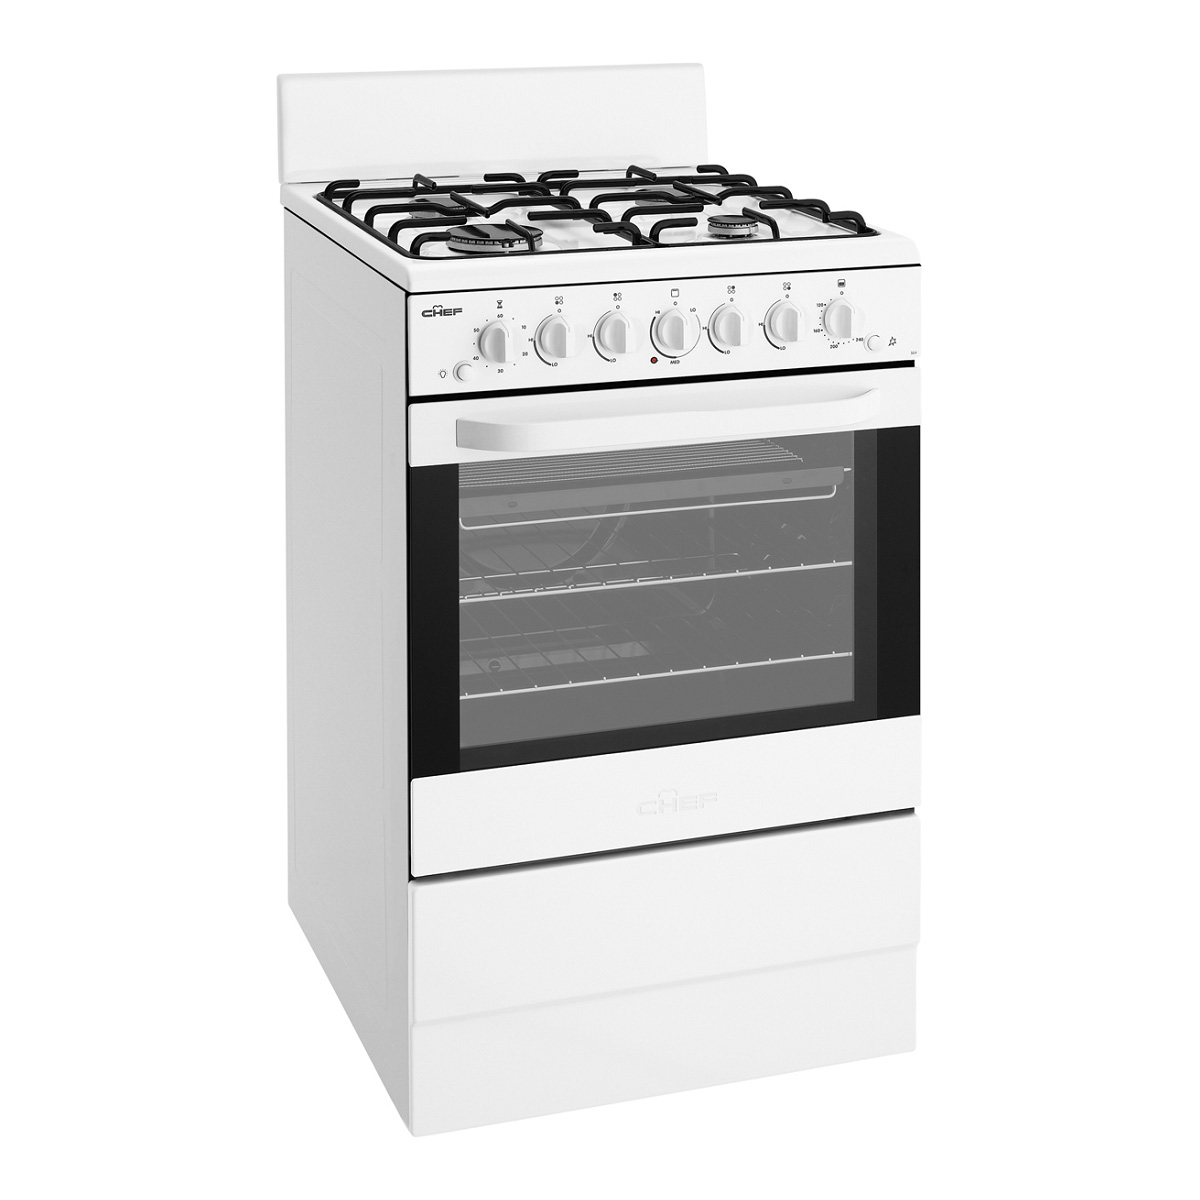 Chef Gas Stove CFG504WALP